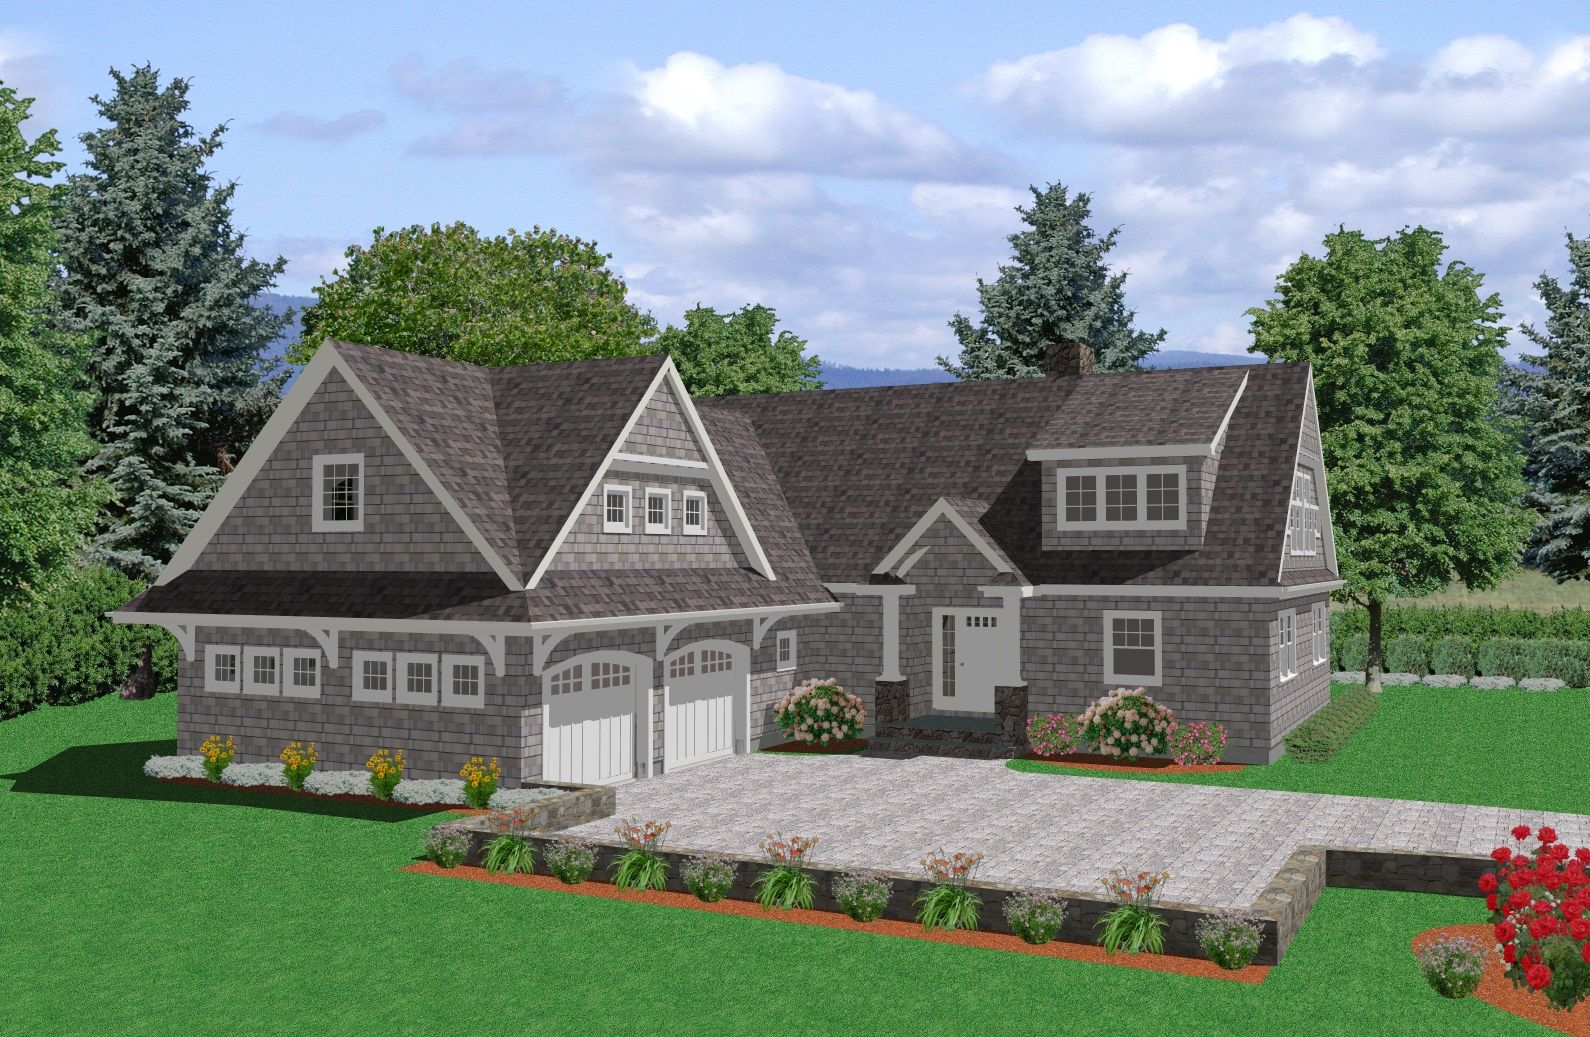 cape cod style homes | Cape Cod House Plans and Cape Cod Designs ...